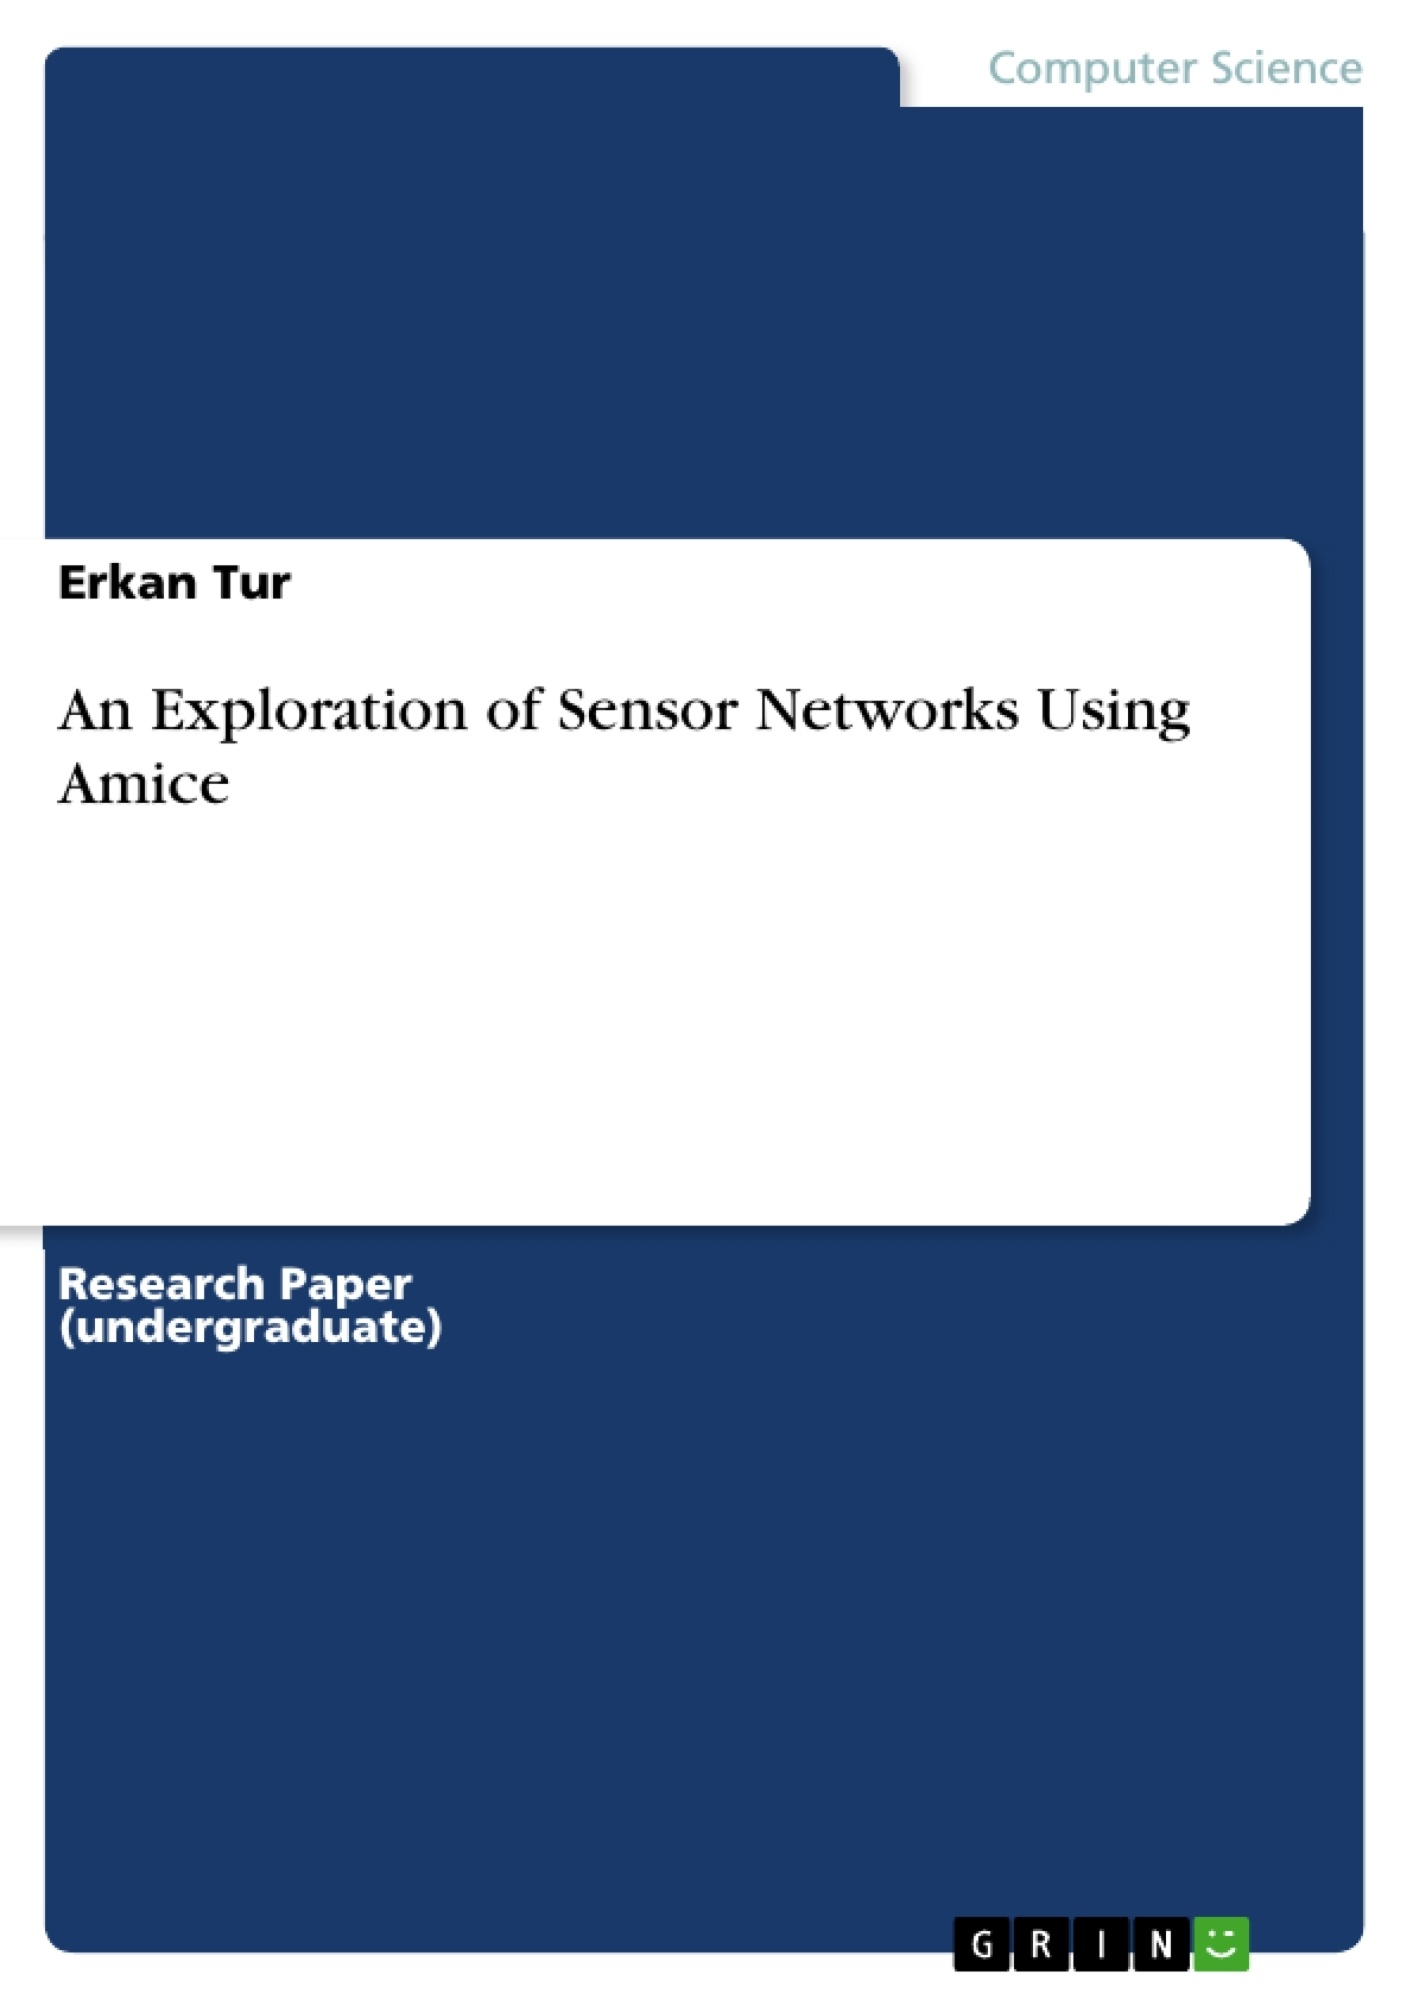 Title: An Exploration of Sensor Networks Using Amice